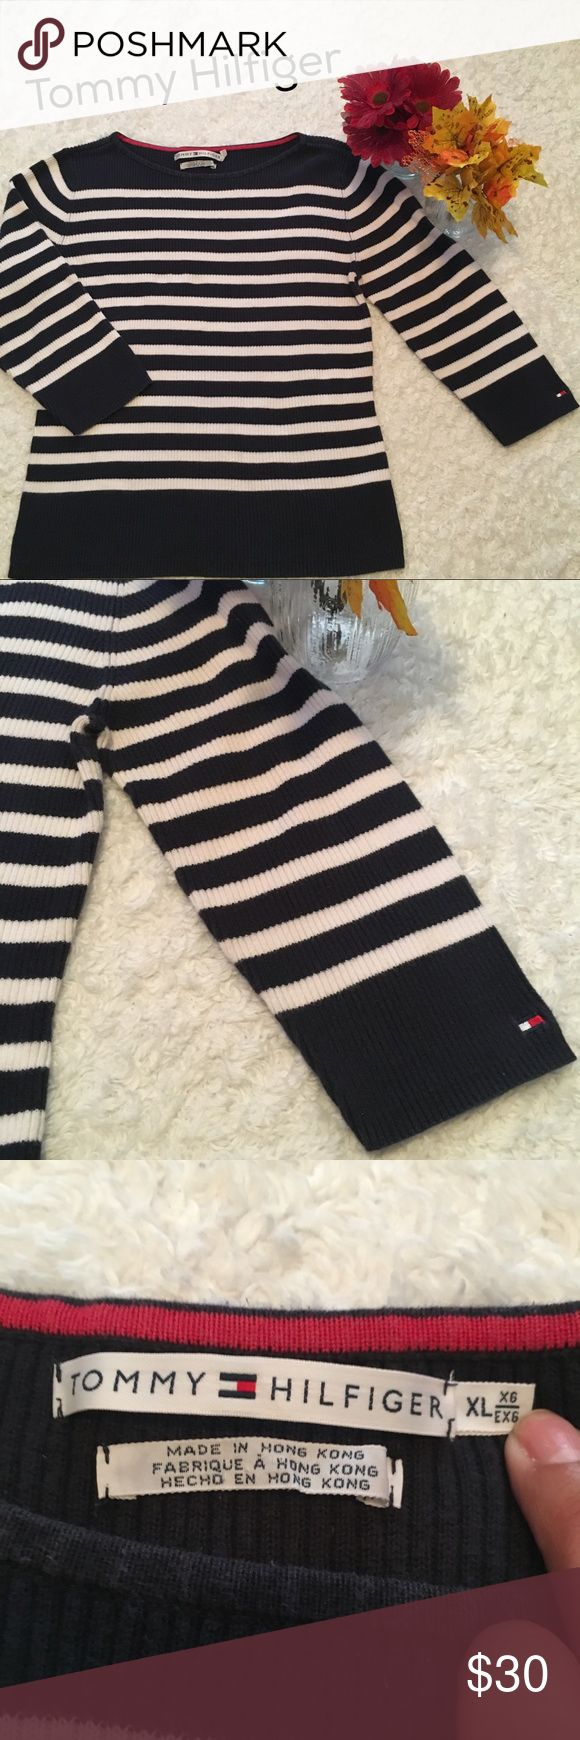 Tommy Hilfiger 3/4 sleeve Sweater In Excellent condition. Has a faded look. Very soft has a good stretch. Would be great for smaller sizes as well if they like loose fit with jeggins. Measurements are above. Pls let me know if you have any questions. Bundle up to save and Offers are welcome :) Tommy Hilfiger Sweaters